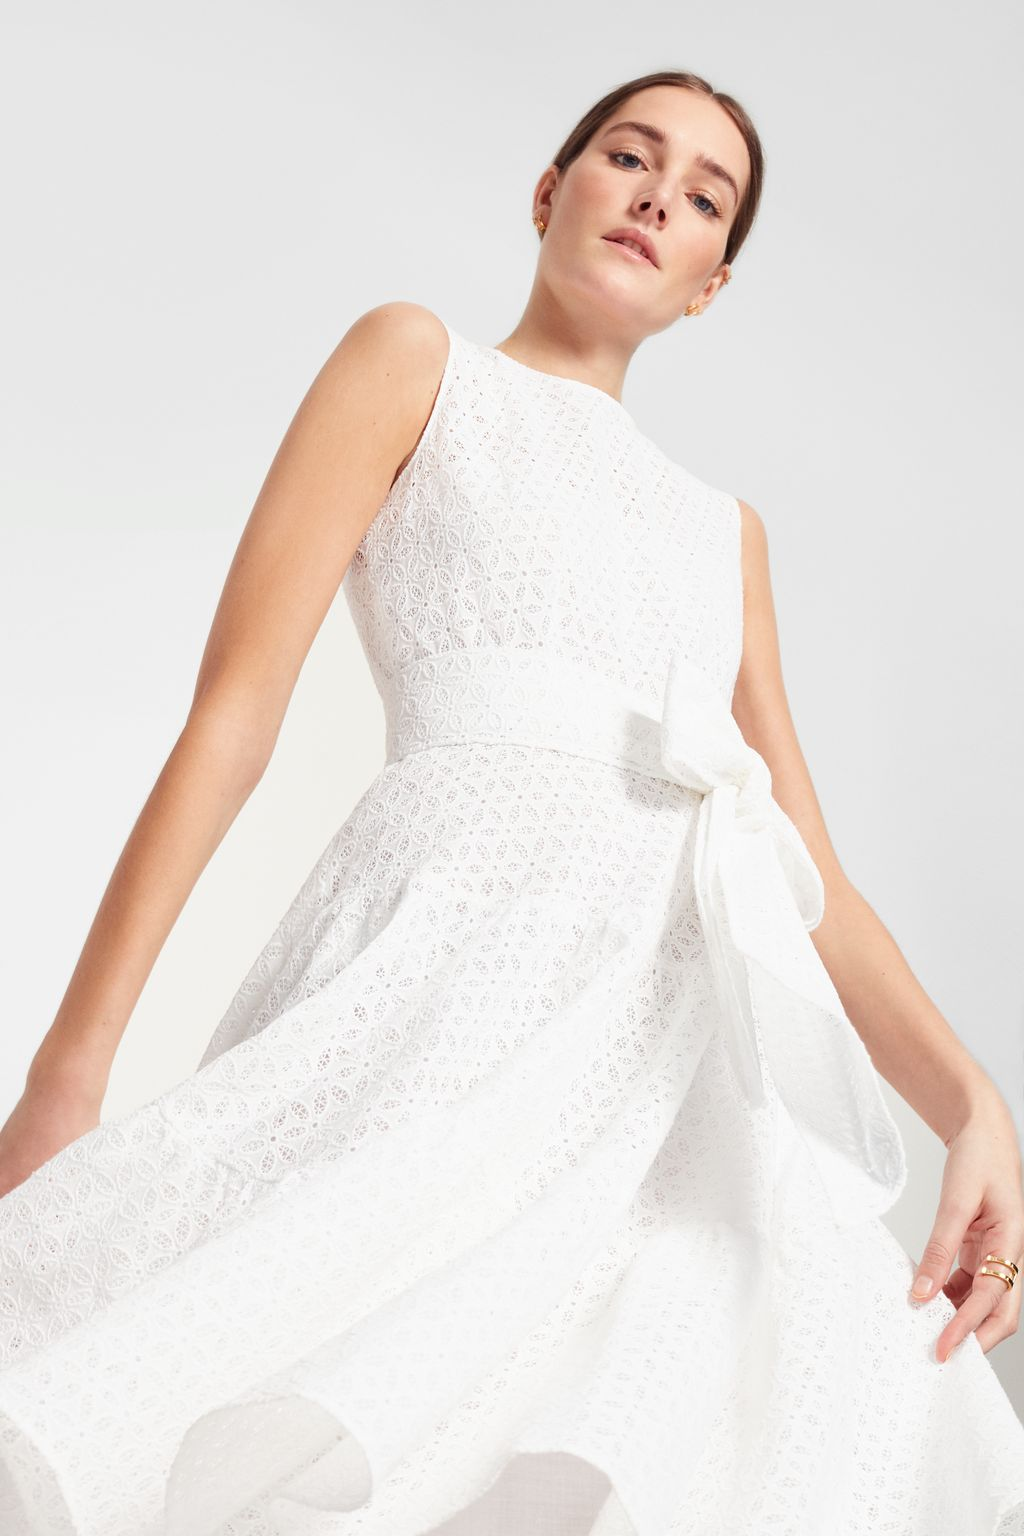 Perforated cotton dress with ruffles